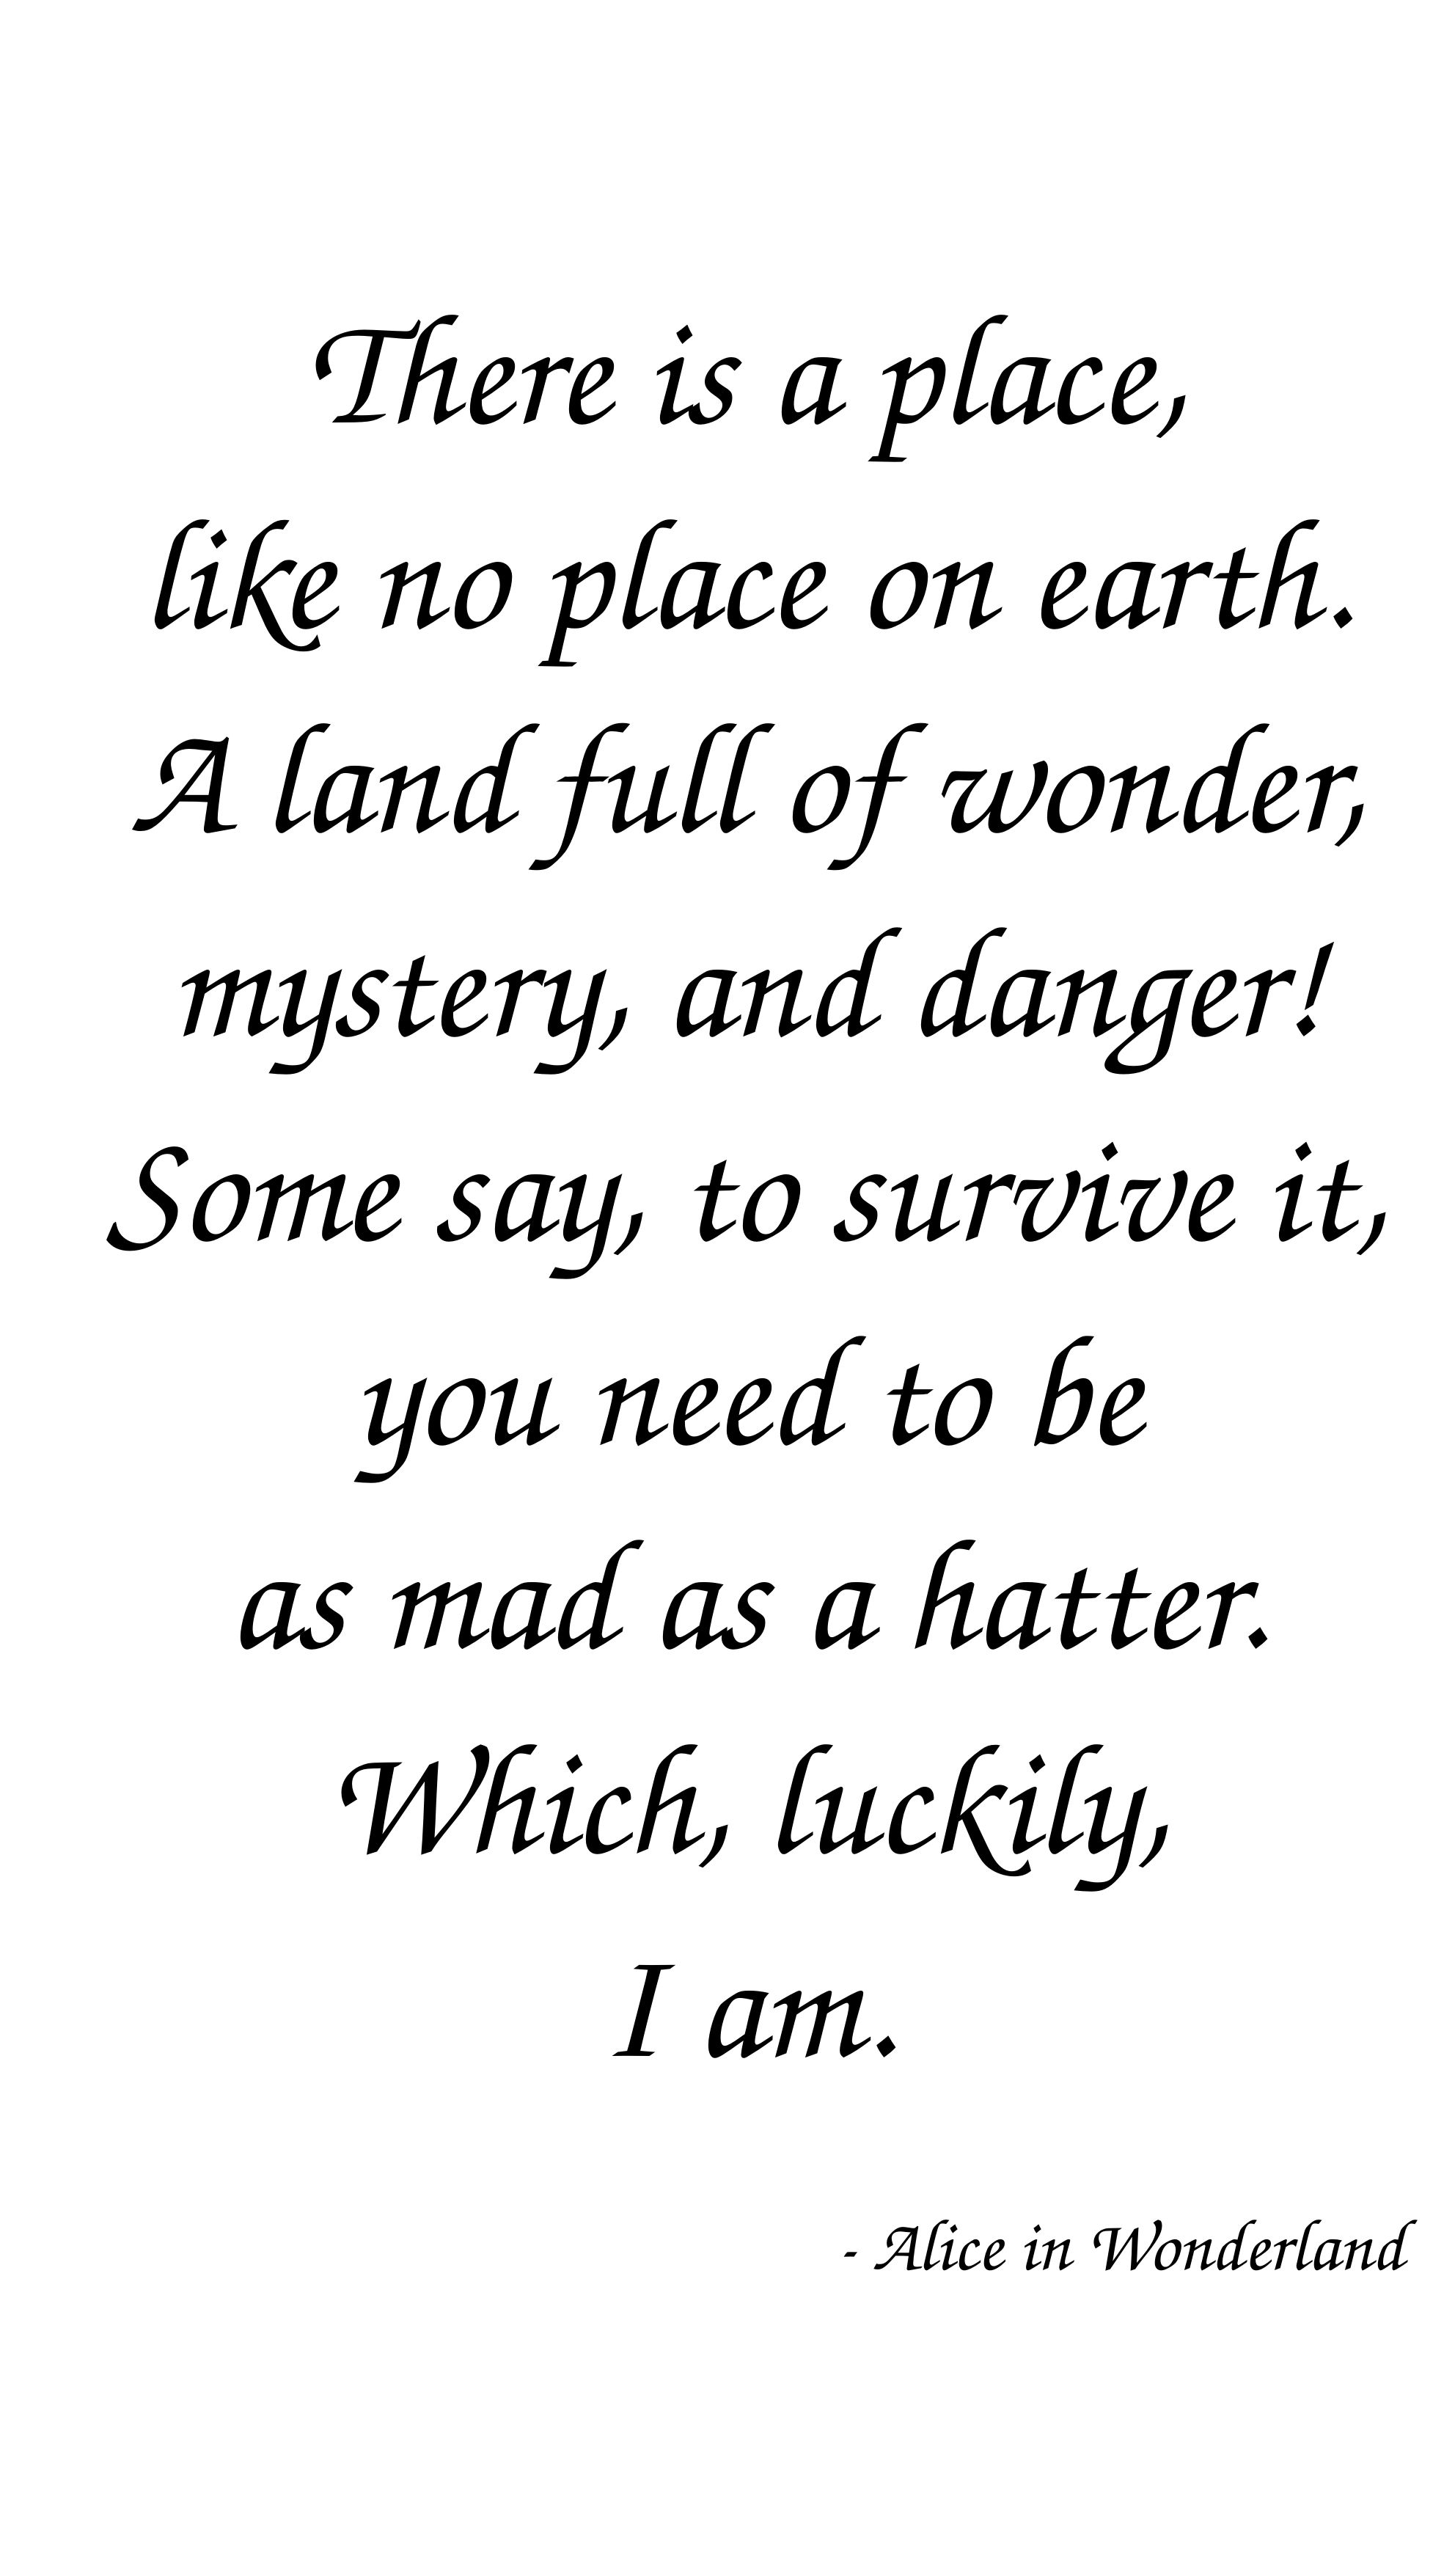 alice i eventyrland citater Alice In Wonderland Quotes | Coutez, Larges Inpirational Quotes  alice i eventyrland citater